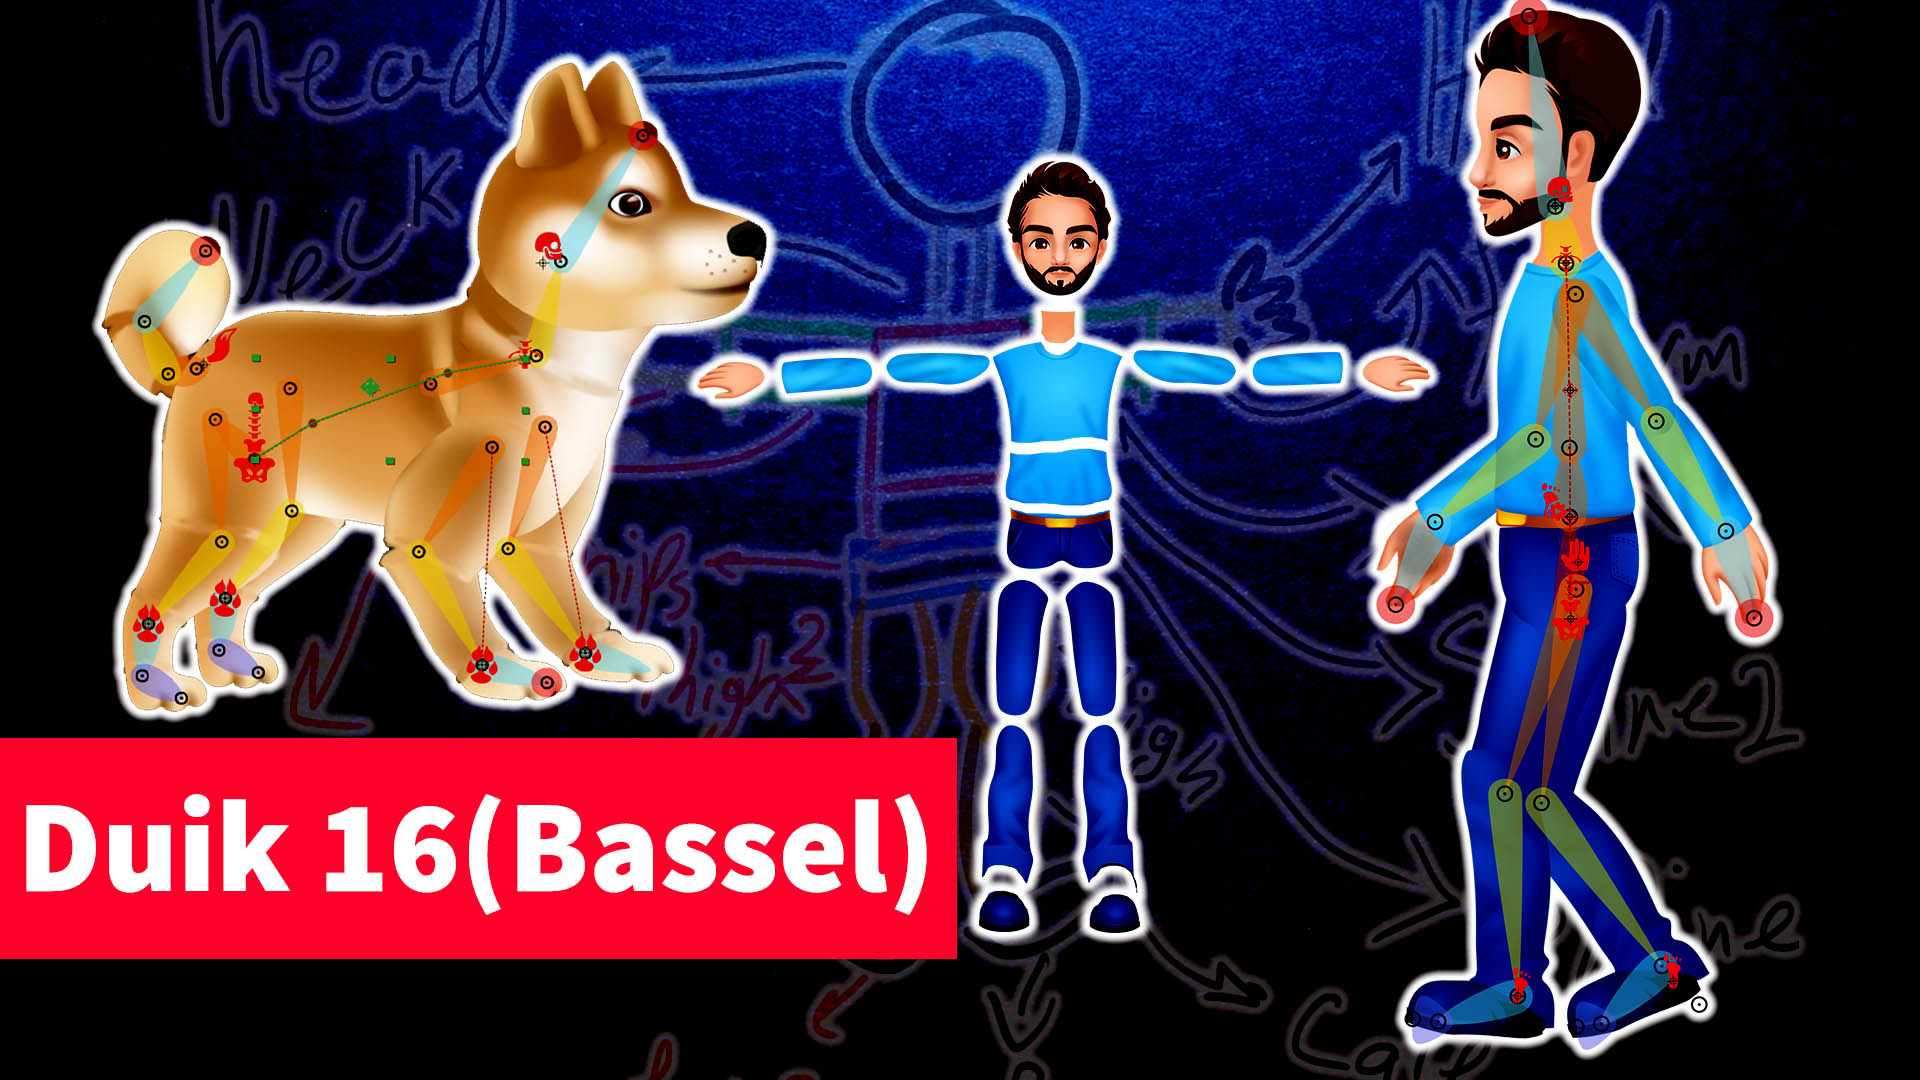 Duik Bassel 2019 Rigging&Animation|Beginner to Advanced| AE